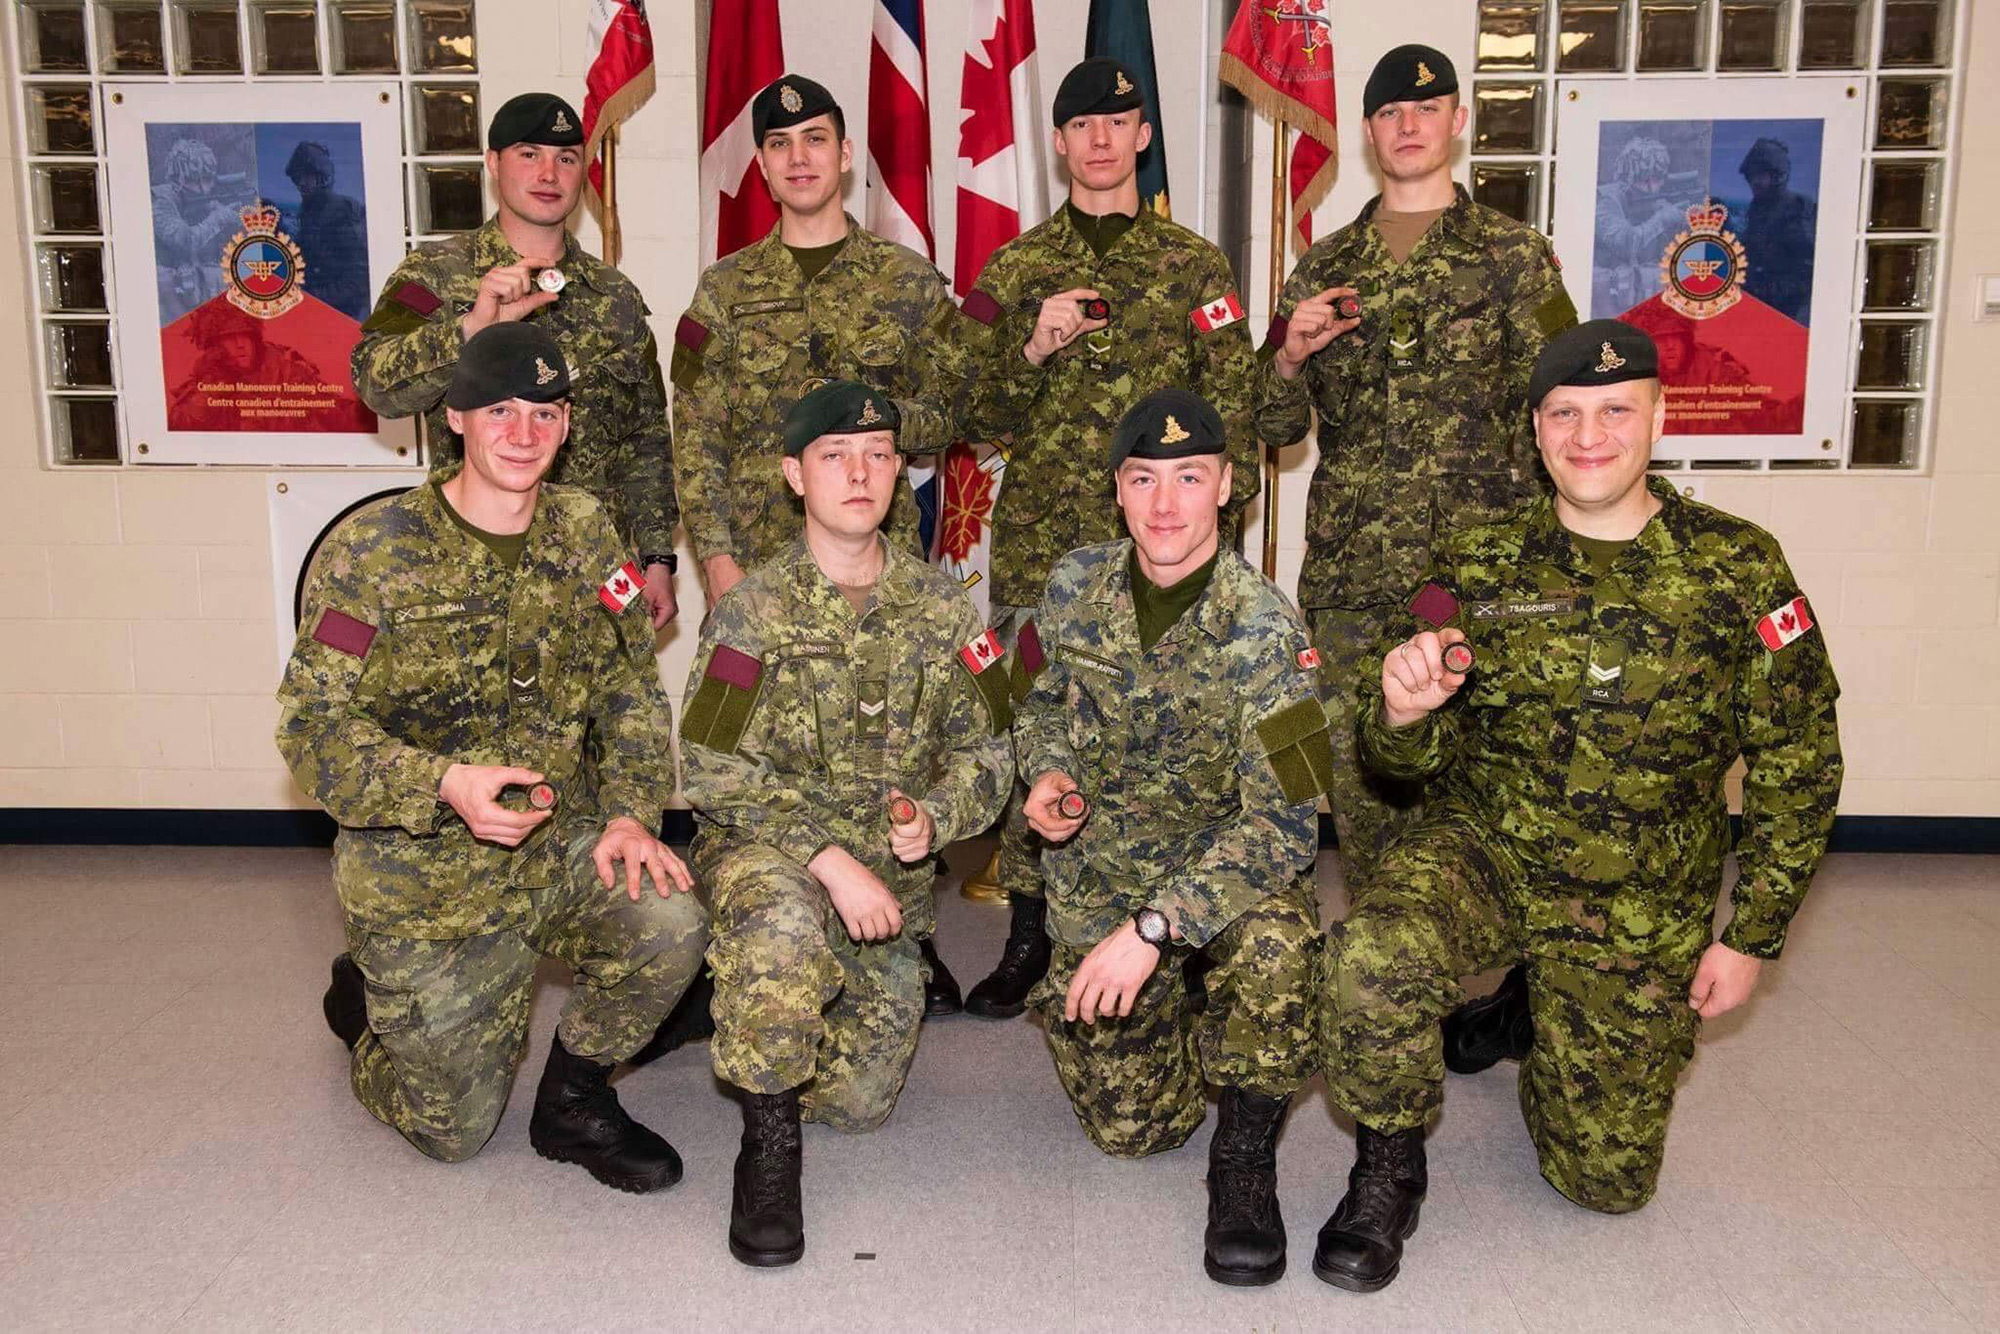 The eight member Canadian Patrol Concentration (CPC) team from 4th Artillery Regiment (General Support), RCA (4 Regt (GS)) displaying their medals after a superb performance of skill and determination. Photo source: DND.